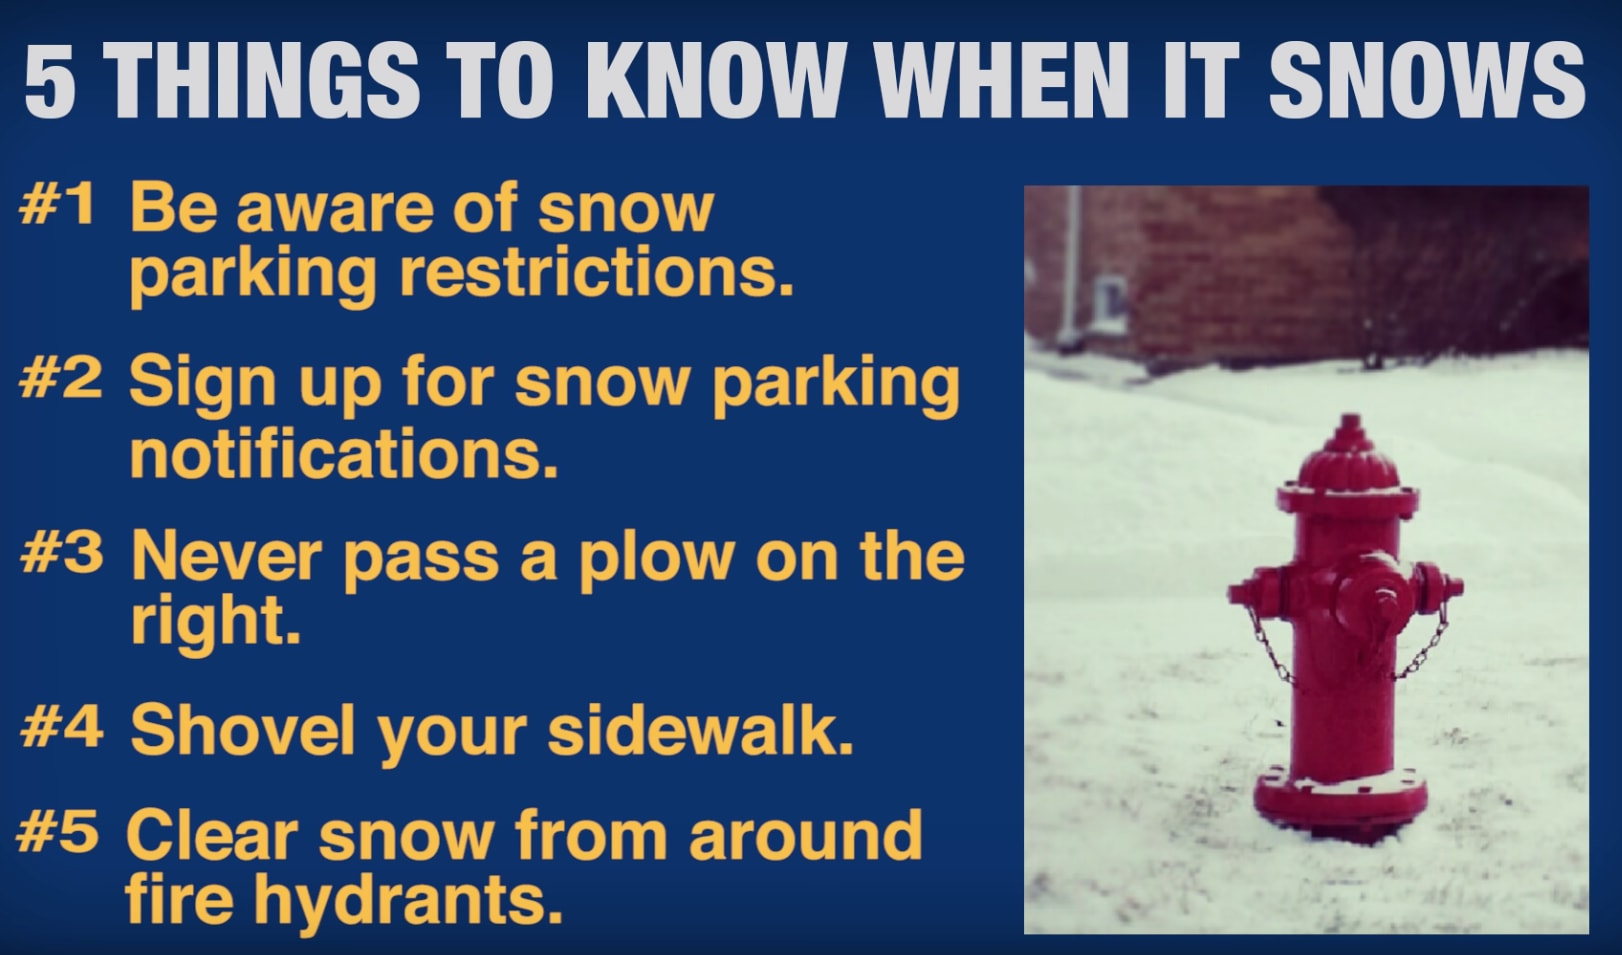 5 Things To Remember When It Snows